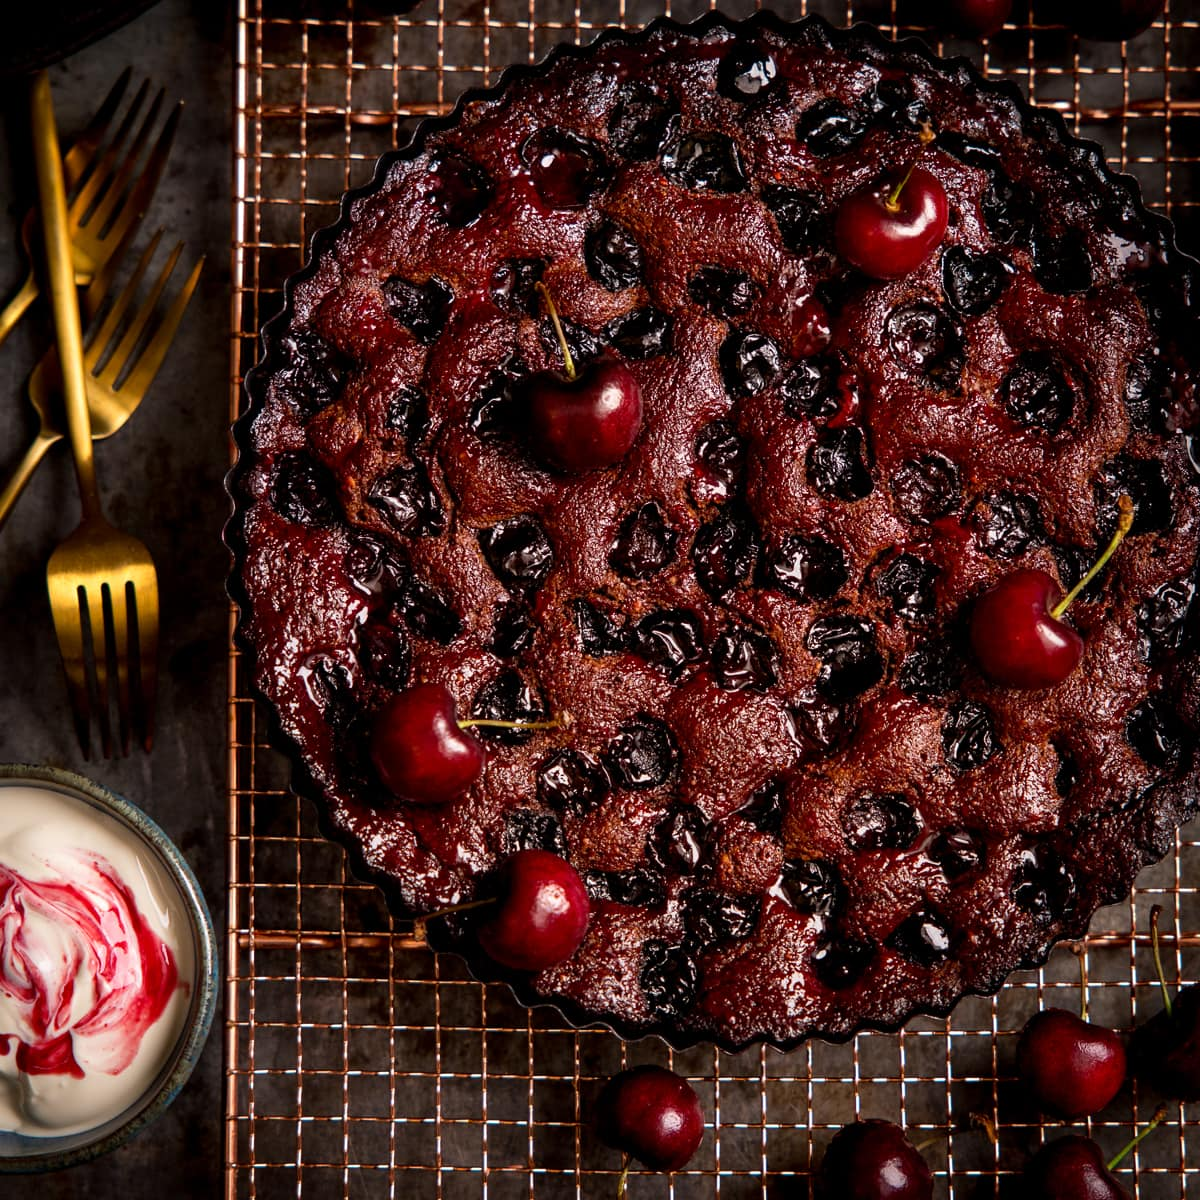 Chocolate Cherry Cake on a wire rack with cherries scattered around.